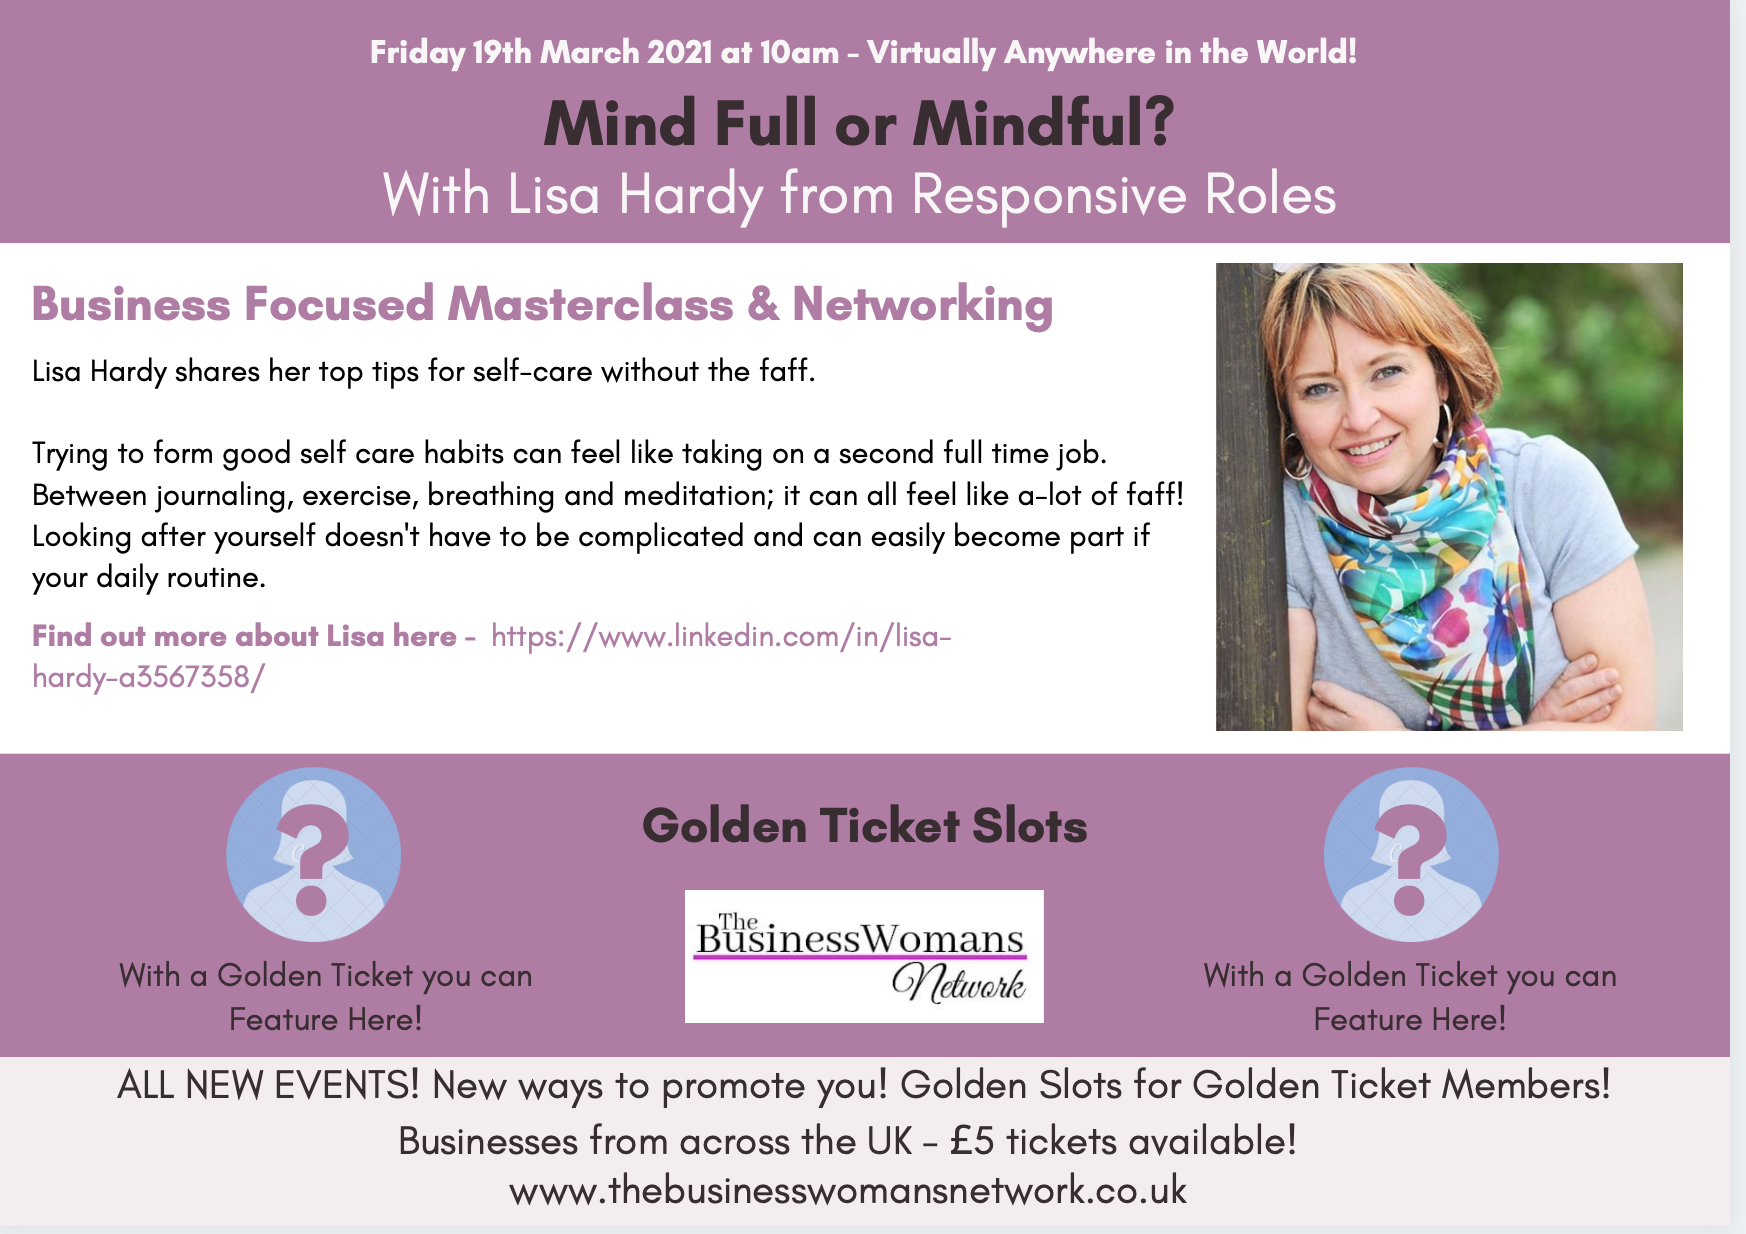 Mind Full or Mindful with Lisa Hardy - Networking and Coaching